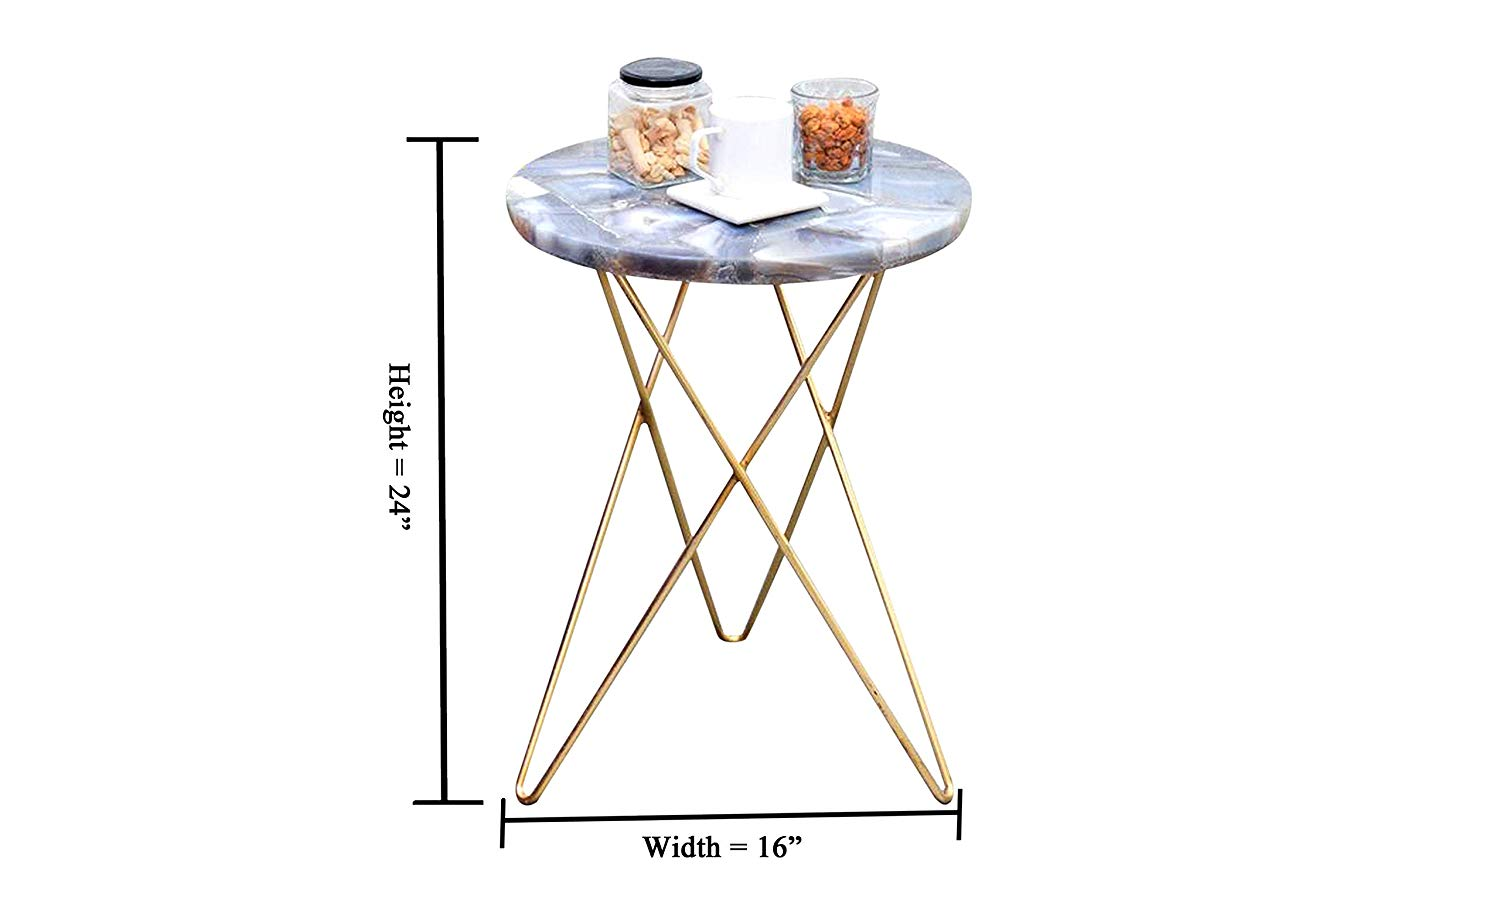 kross agate end table kitchen dining glass accent basic coffee lamp with usb port victorian side top white round linens jacket hoodie plexiglass desk combo square clear nest